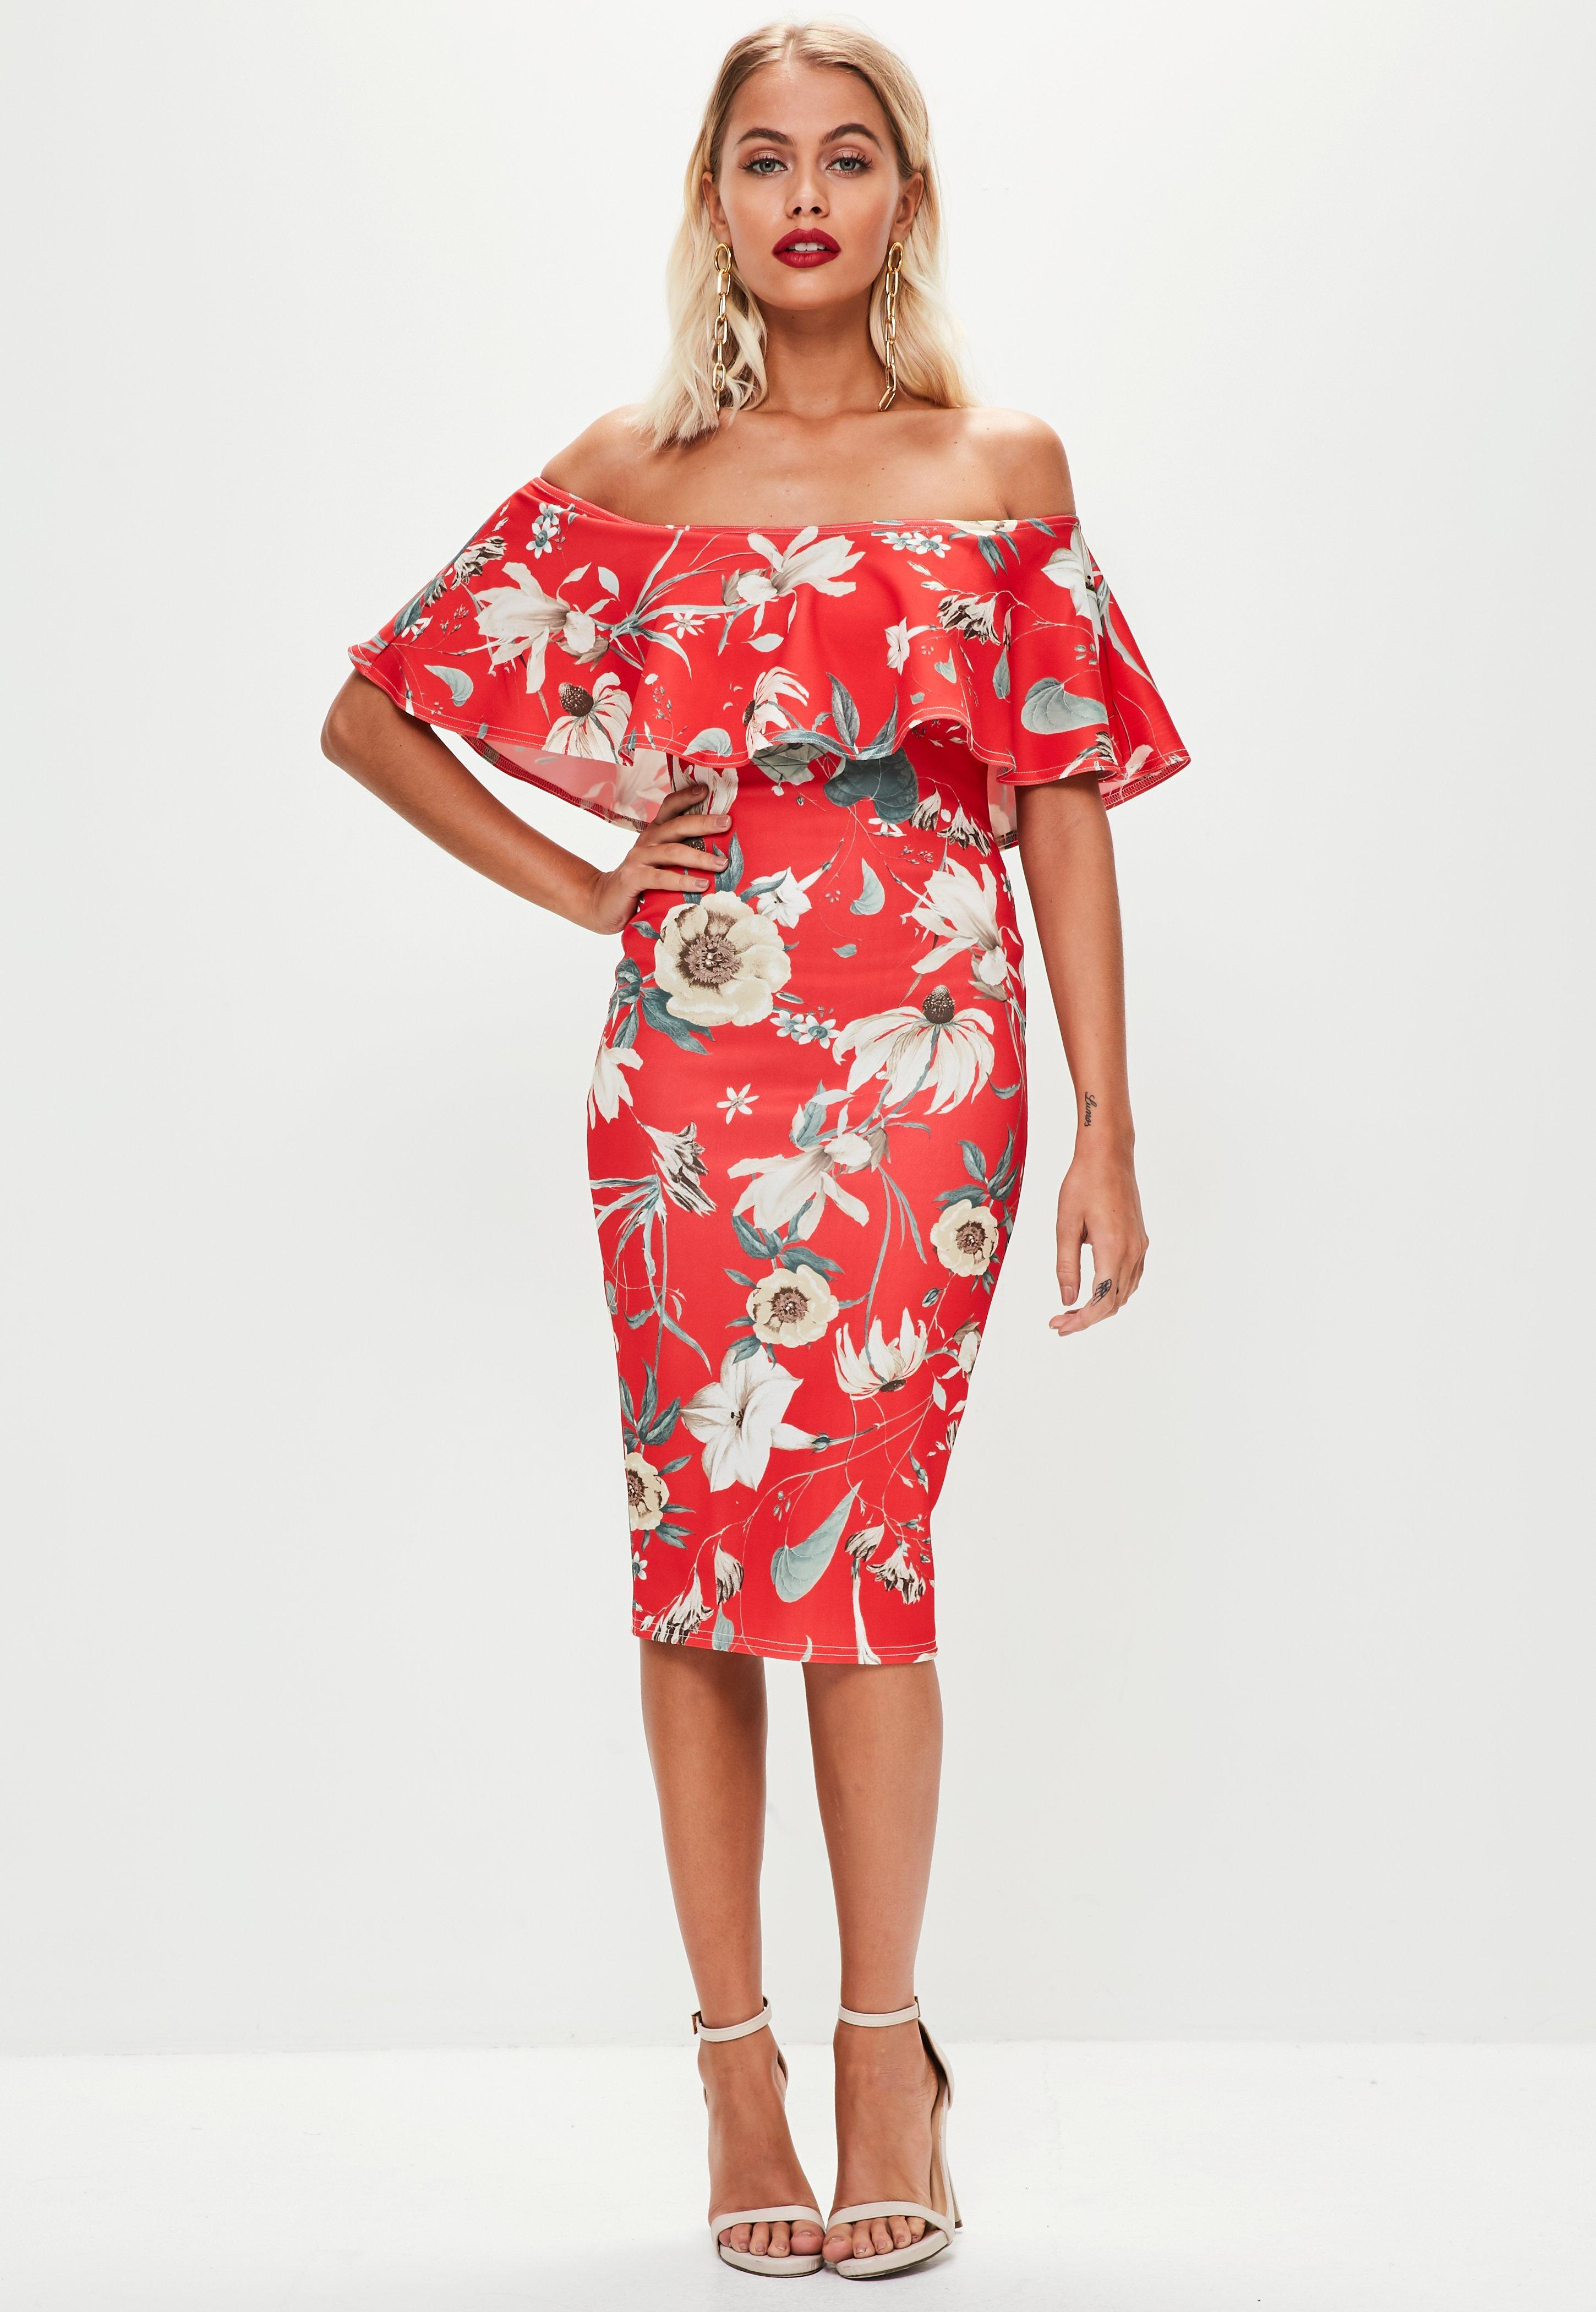 eb7e2020f Missguided Red Floral Print Frill Bandeau Dress in Red - Lyst